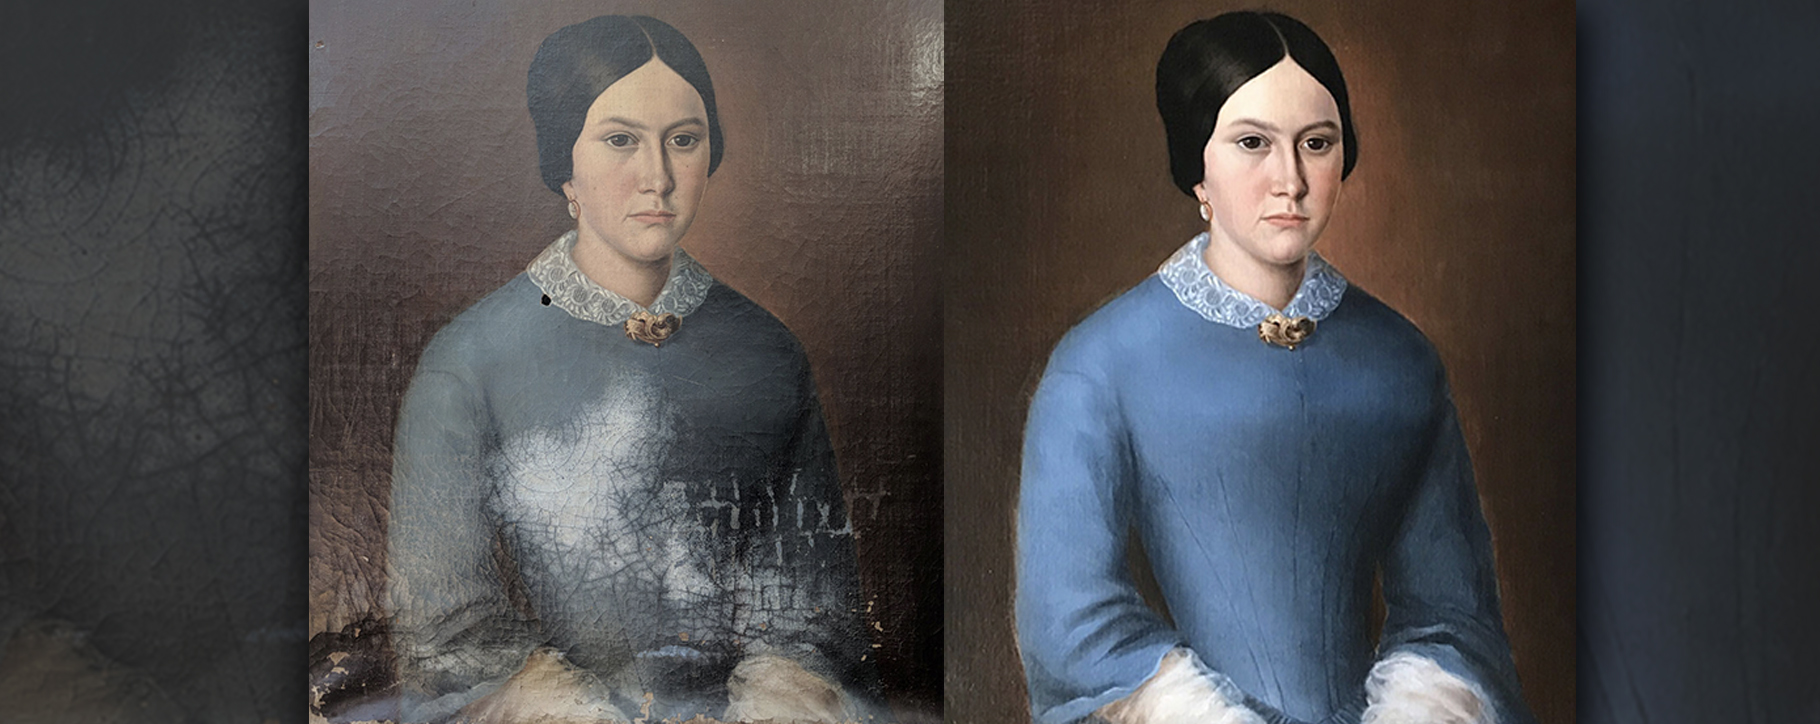 Before After Water Damaged Victorian Portrait